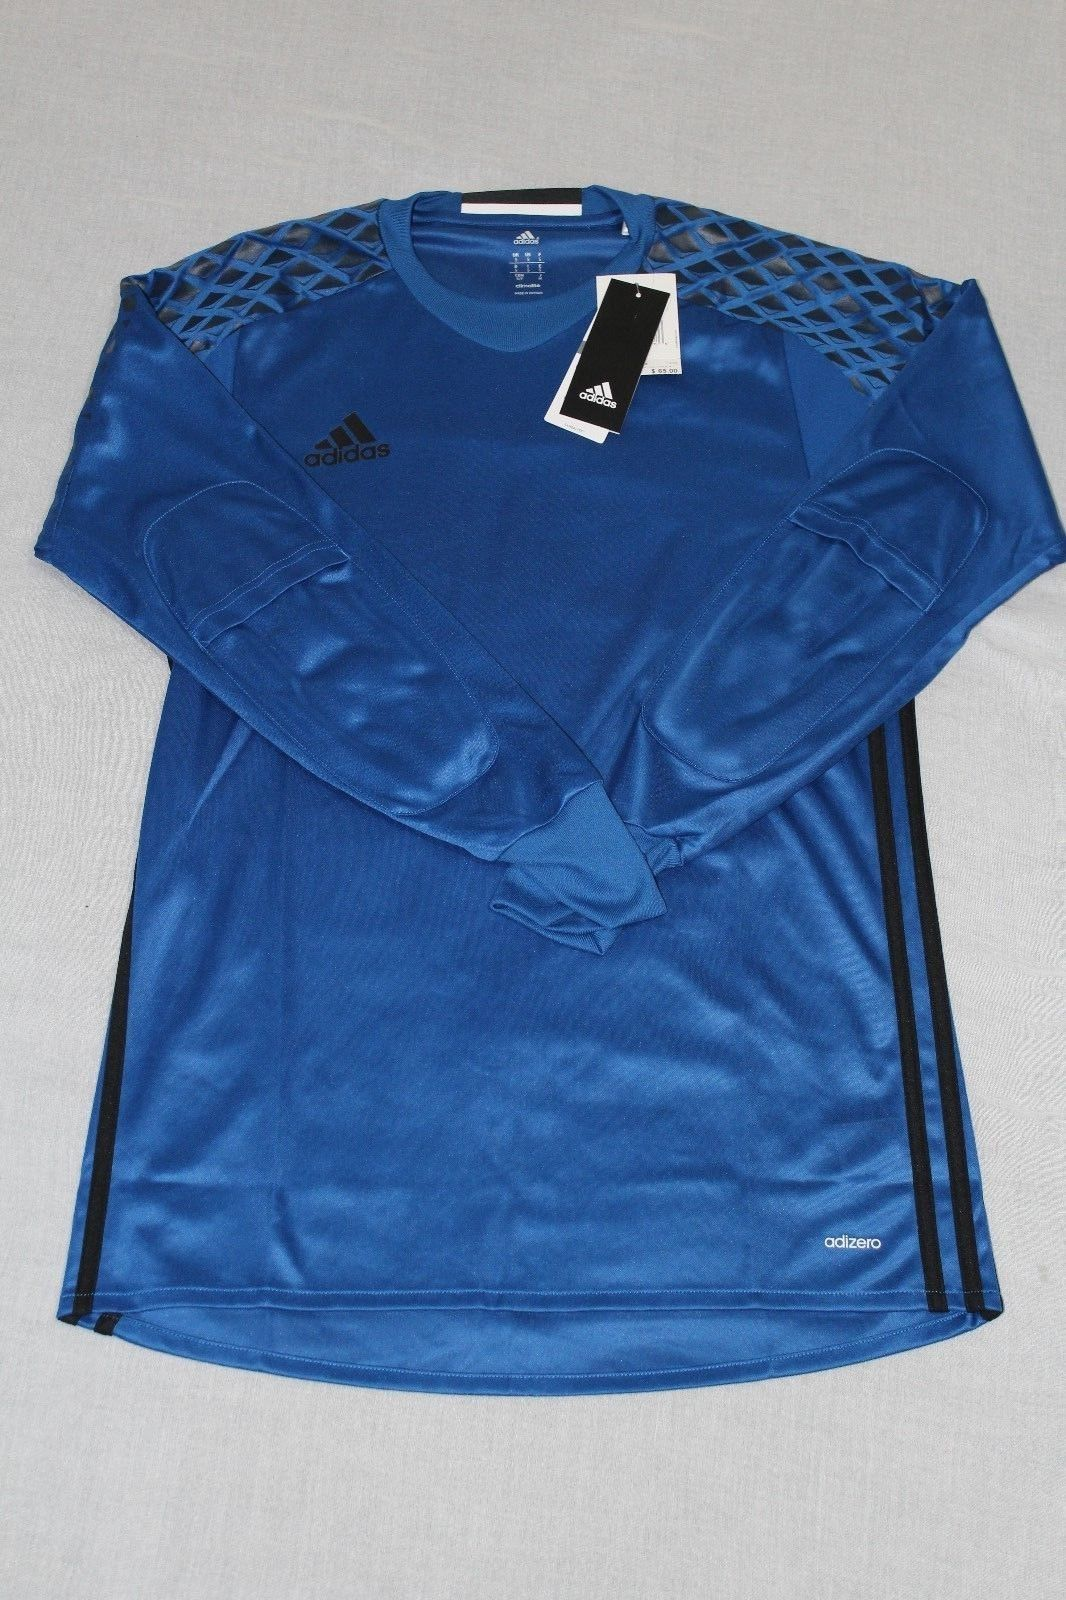 3e18ba81f66 Adidas Onore 16 GK Goalkeeper Jersey Adizero Blue/Black Men Sizes SML  #AI6338